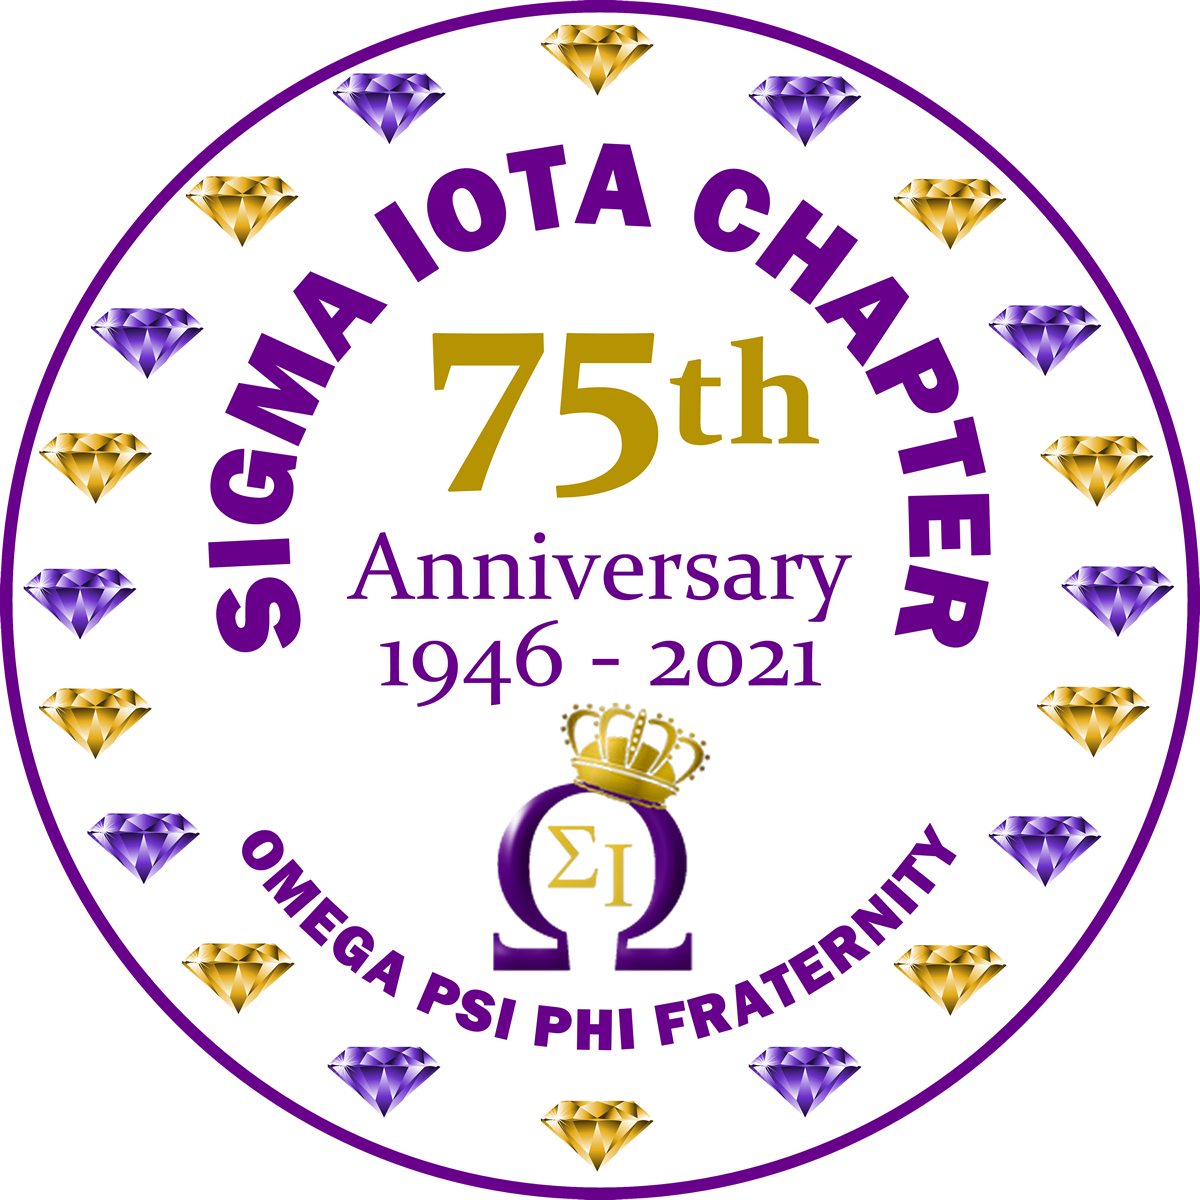 Sigma Iota Chapter 75th Anniversary